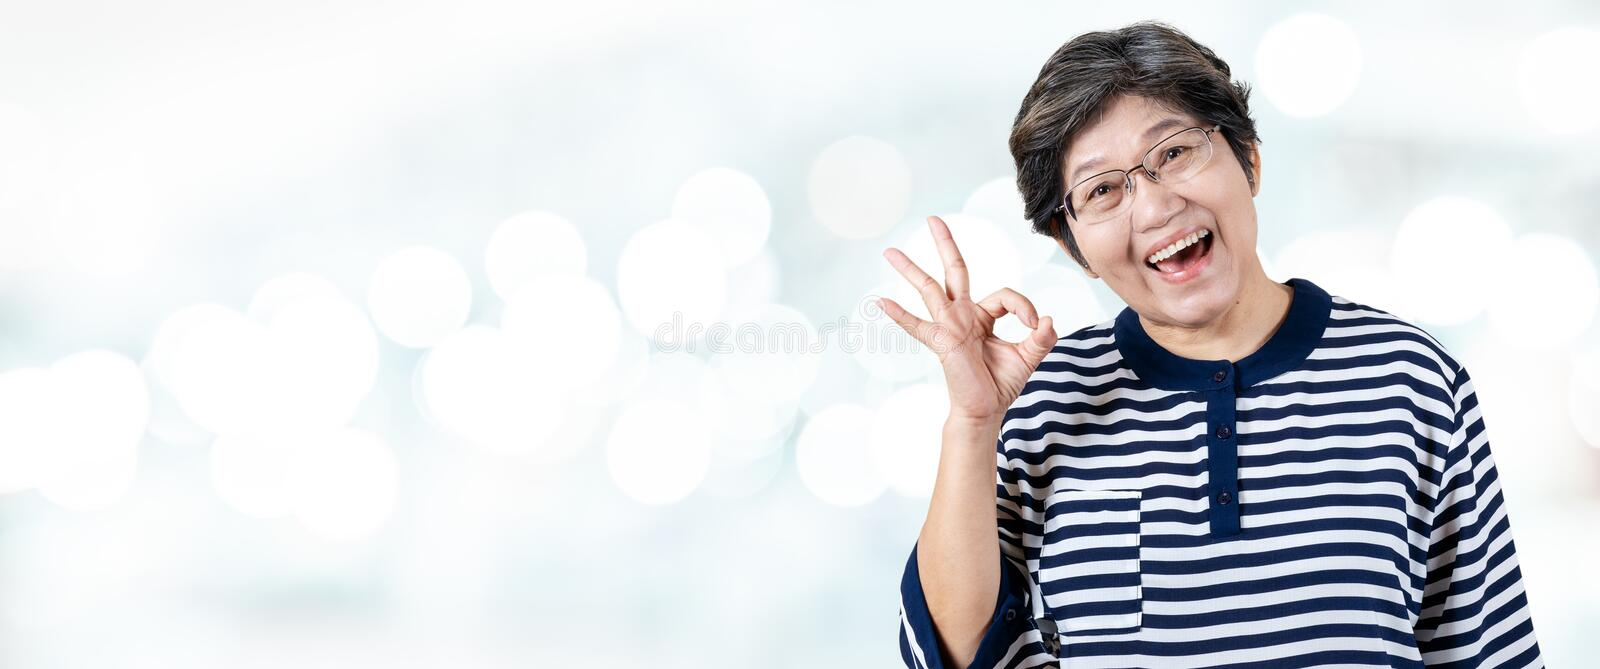 Senior Asian woman doing OK gesture royalty free stock photography